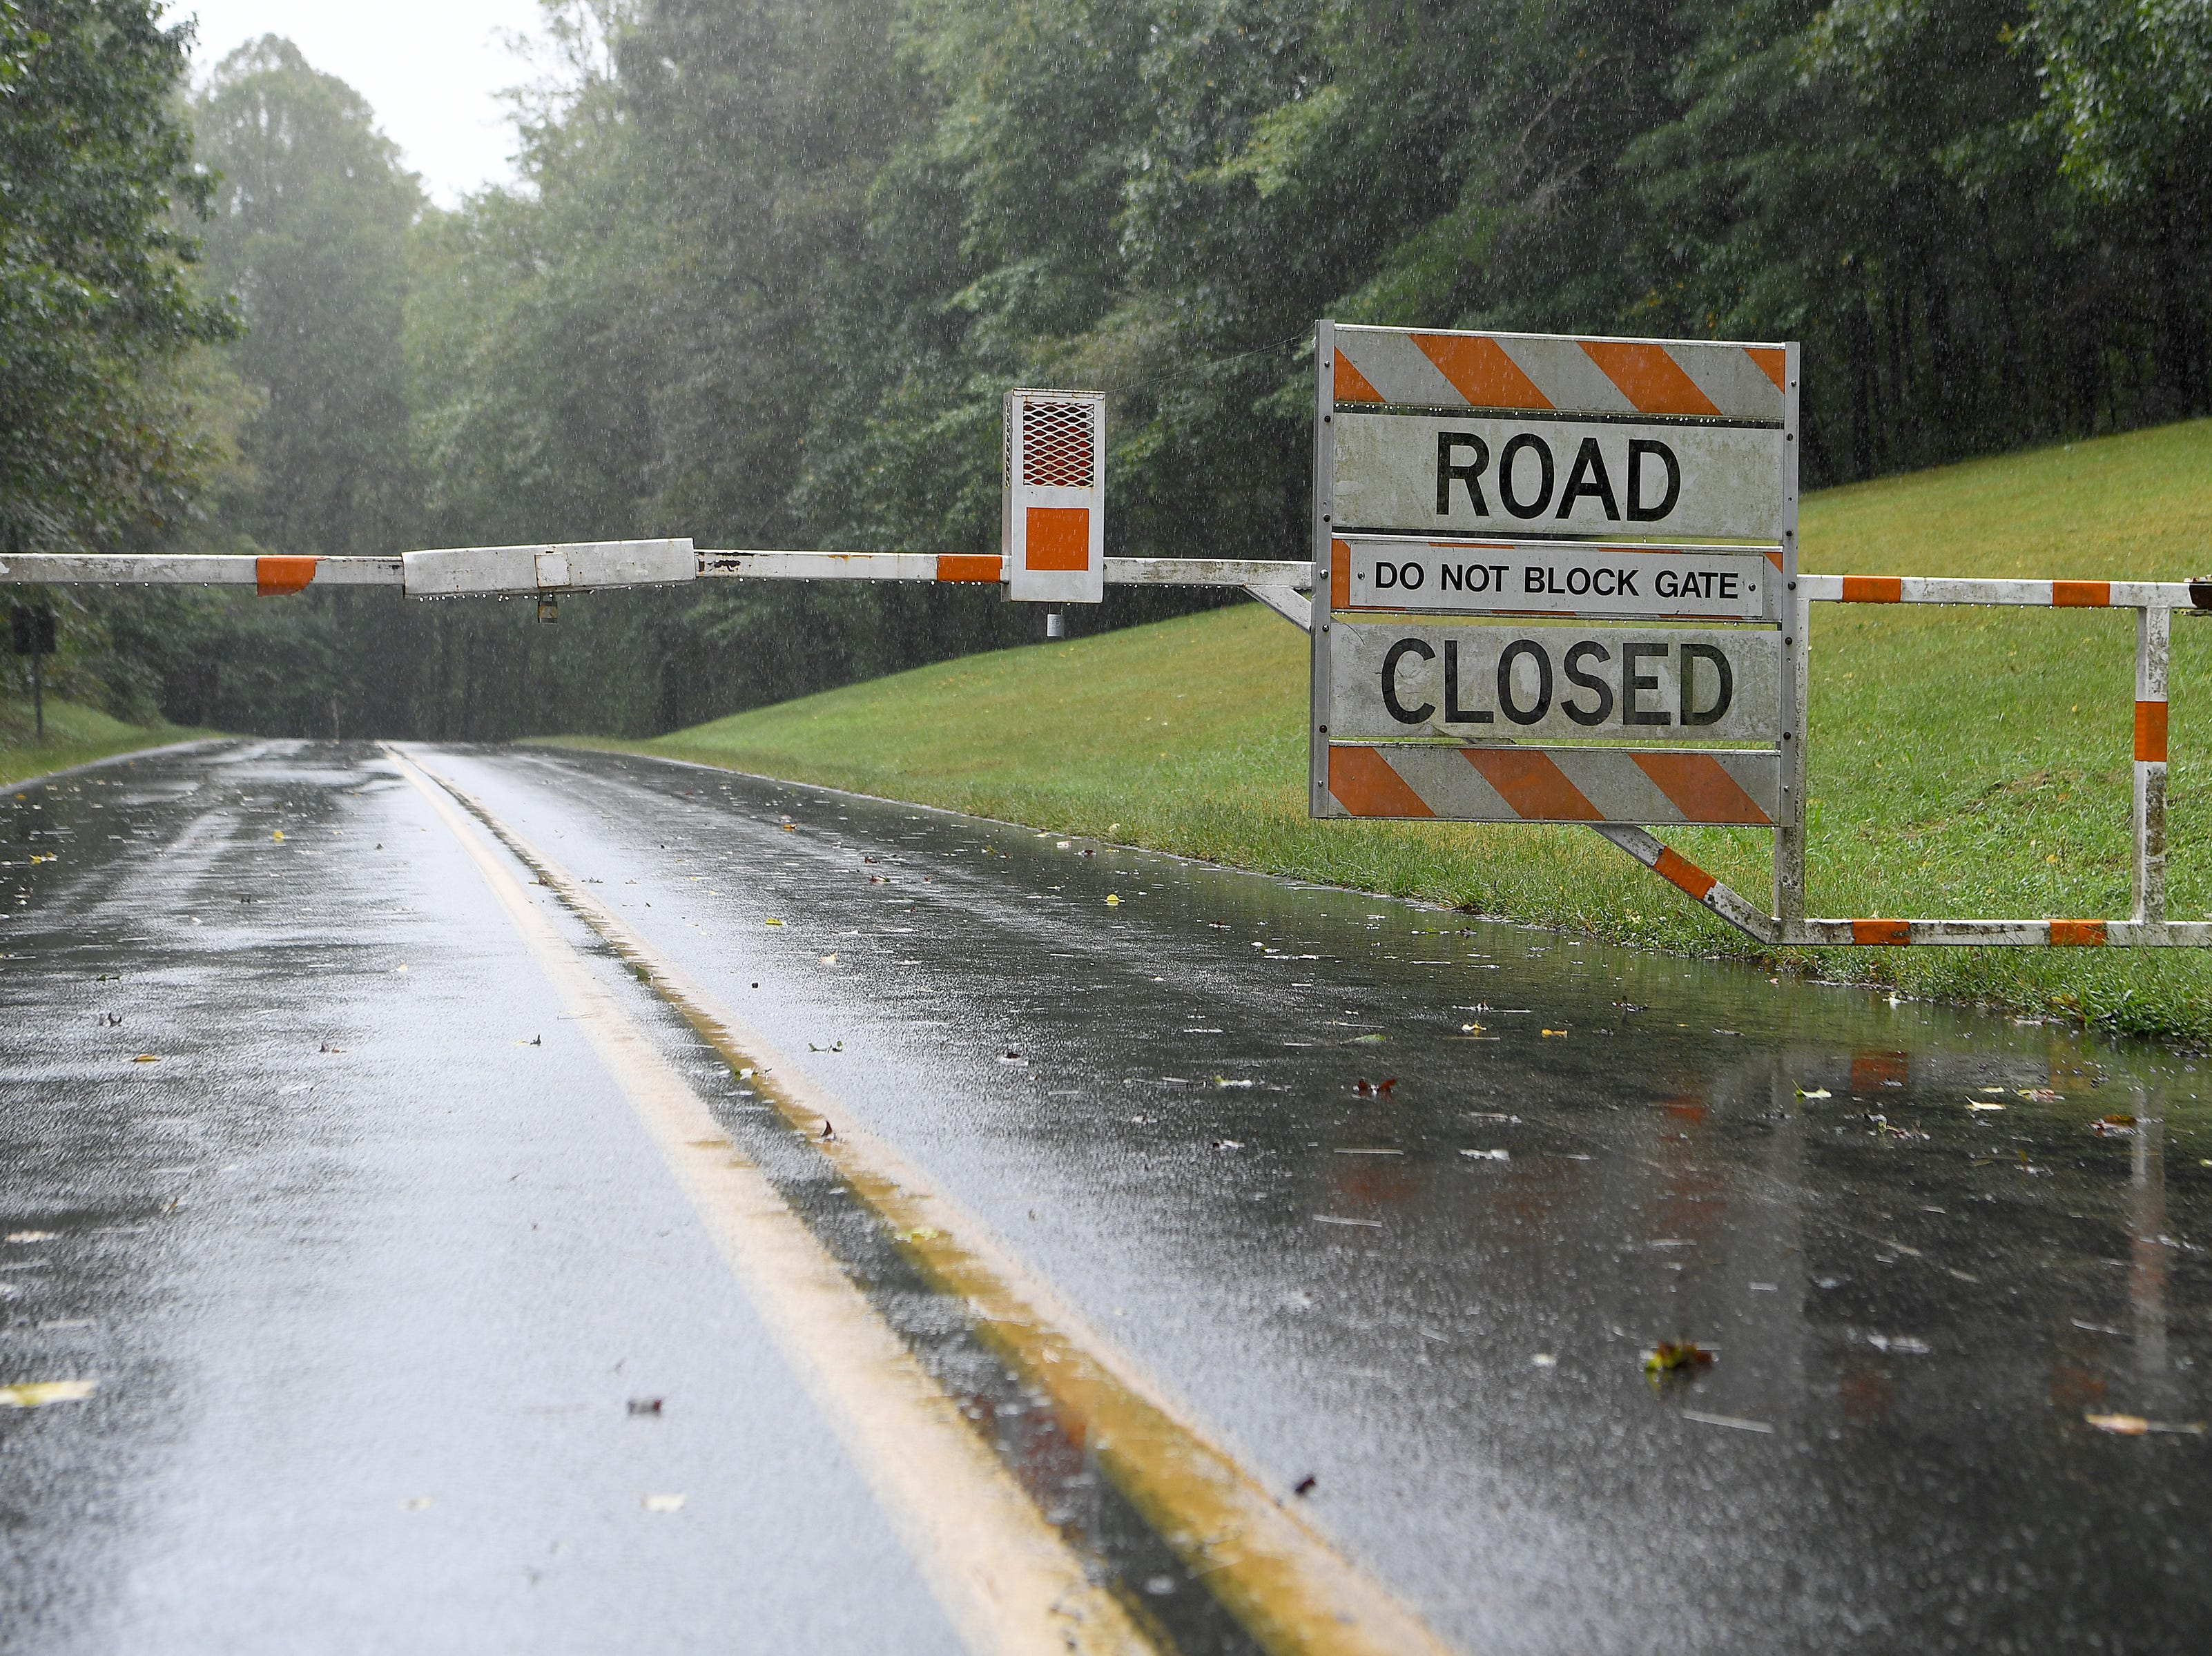 Blue Ridge Parkway completely closed in Asheville, WNC due to dangerous road conditions